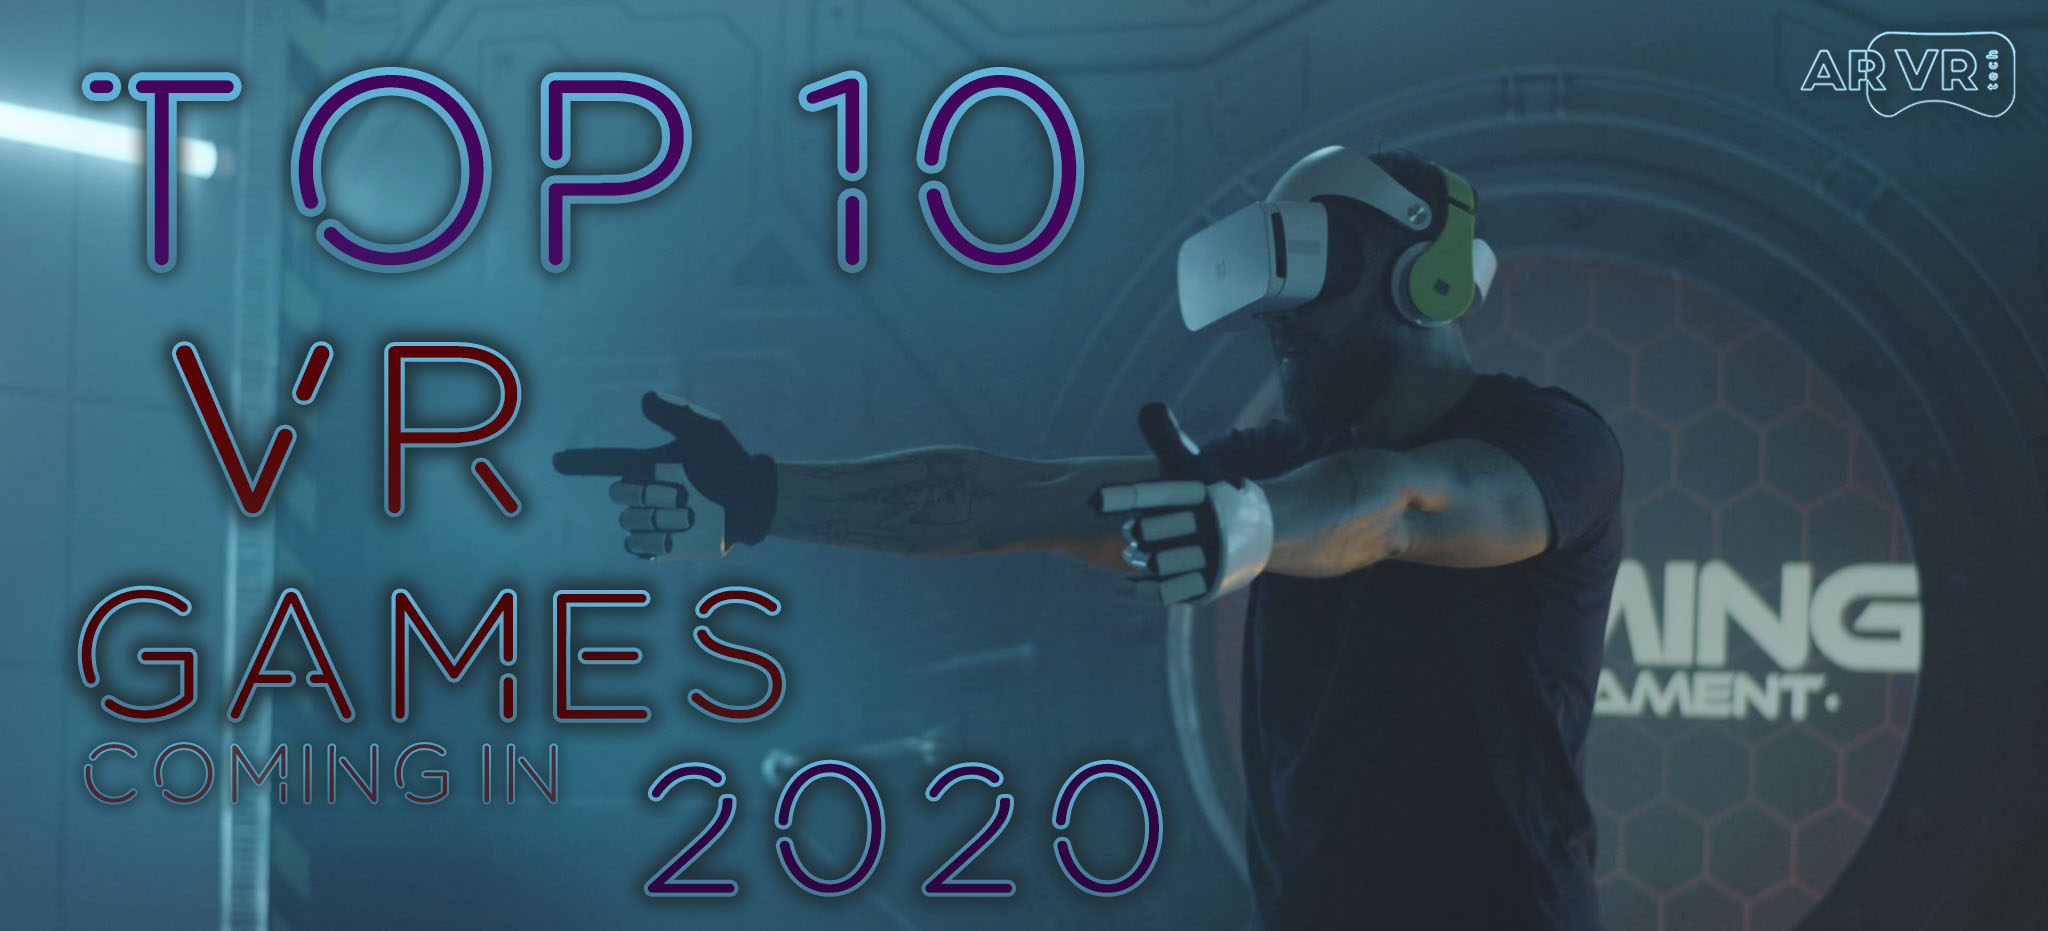 Top 10 VR Games Coming in 2020